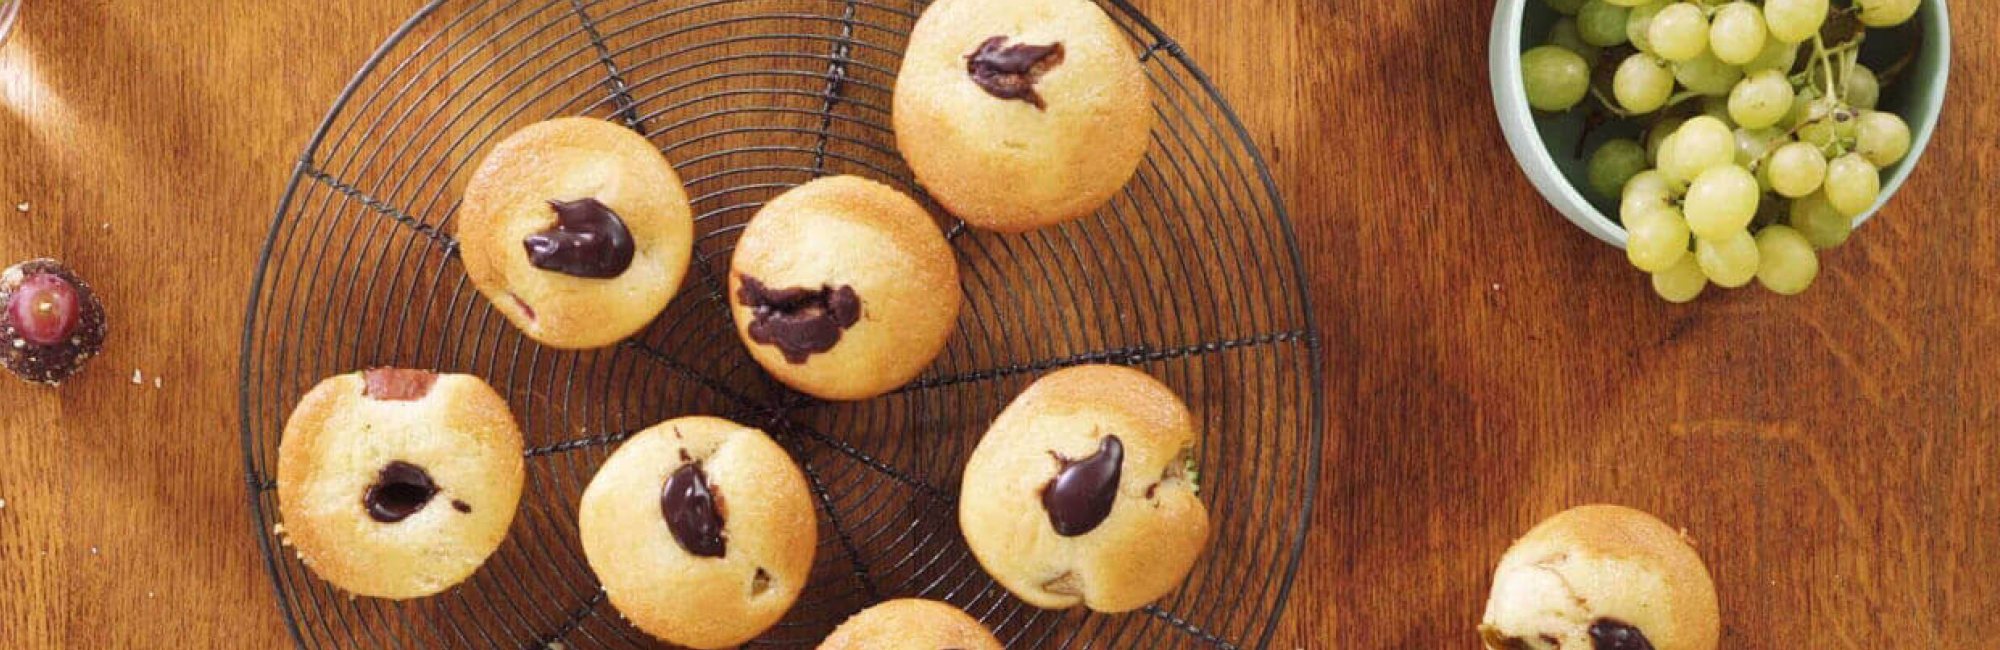 Muffins, chocolat, fruits d'automne